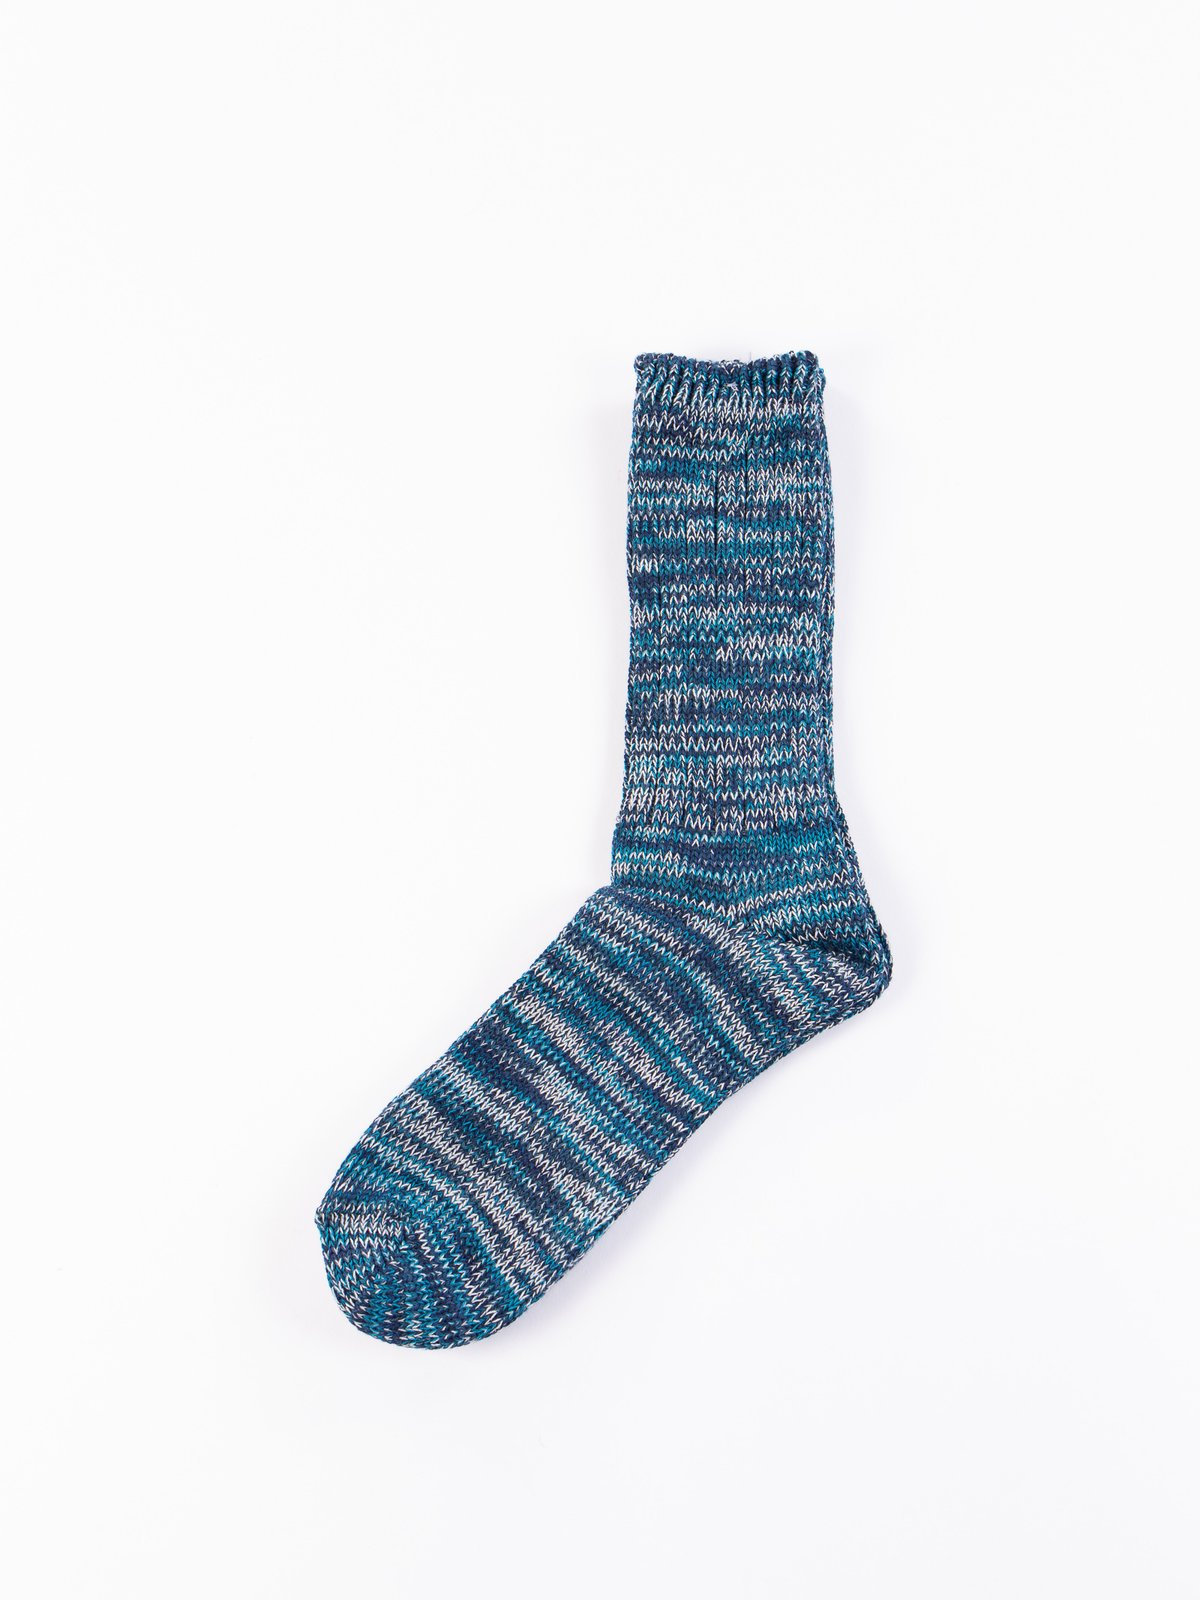 Dark Navy 5 Colour Mix Crew Socks - Image 1